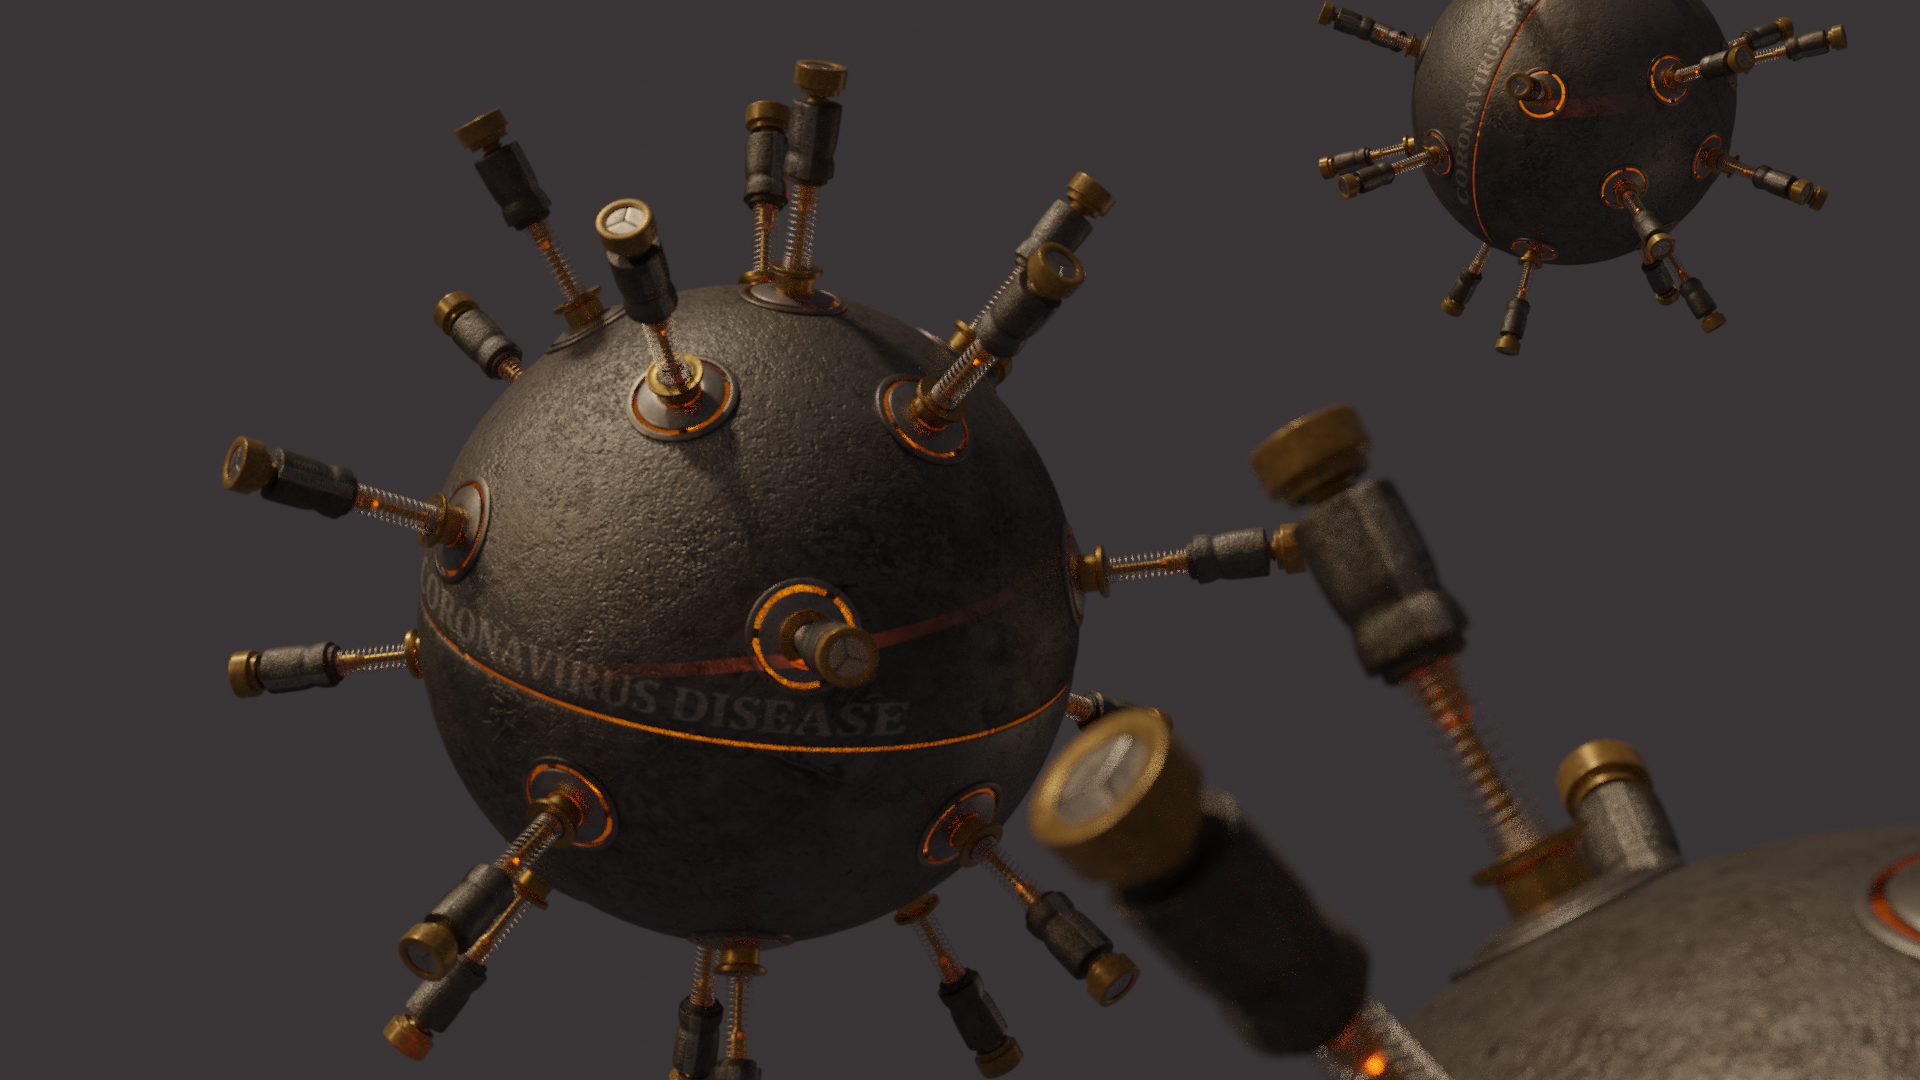 Making Machinery Style Coronavirus in Blender 4